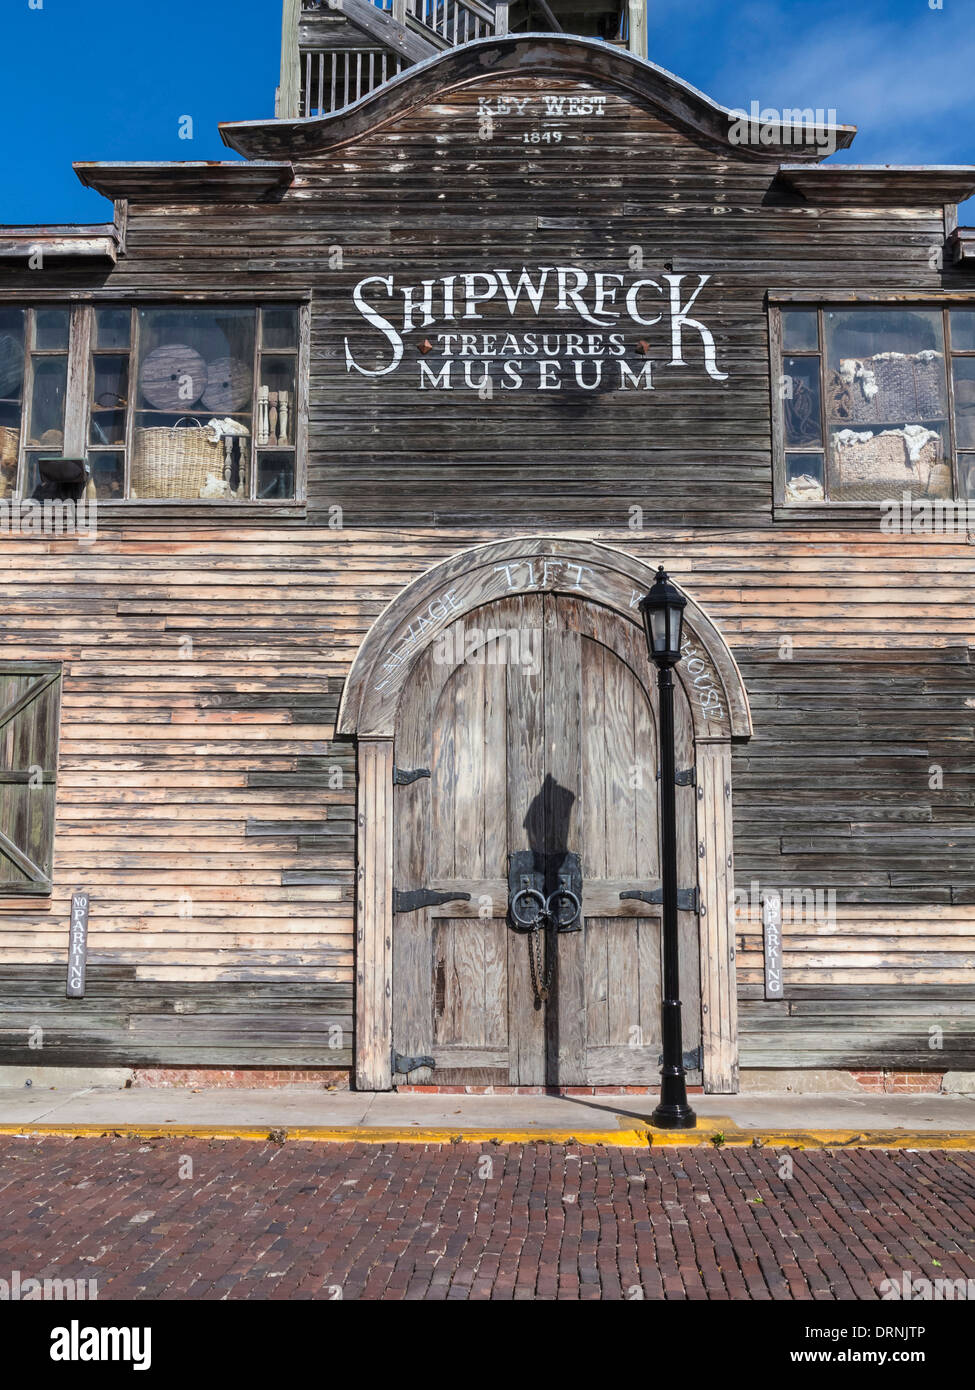 Shipwreck Treasure Museum in Key West, Florida, USA - Stock Image